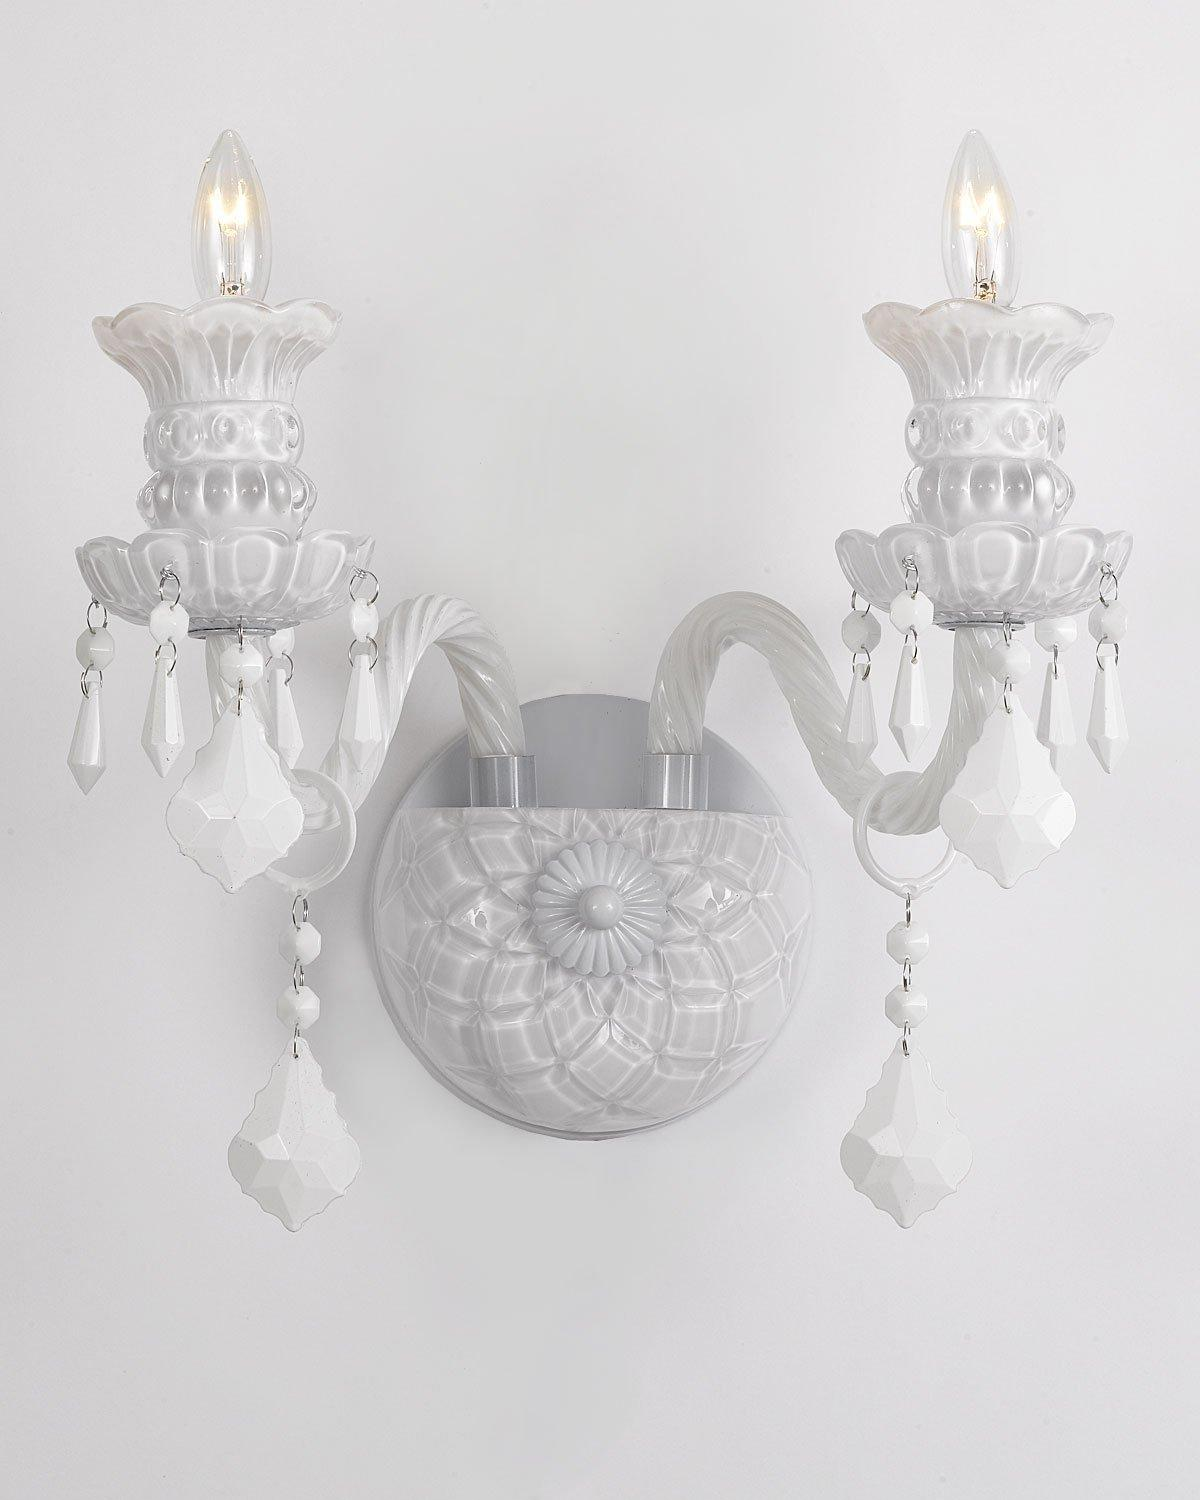 Snow White Venetian Style Crystal Wall Sconce Lighting